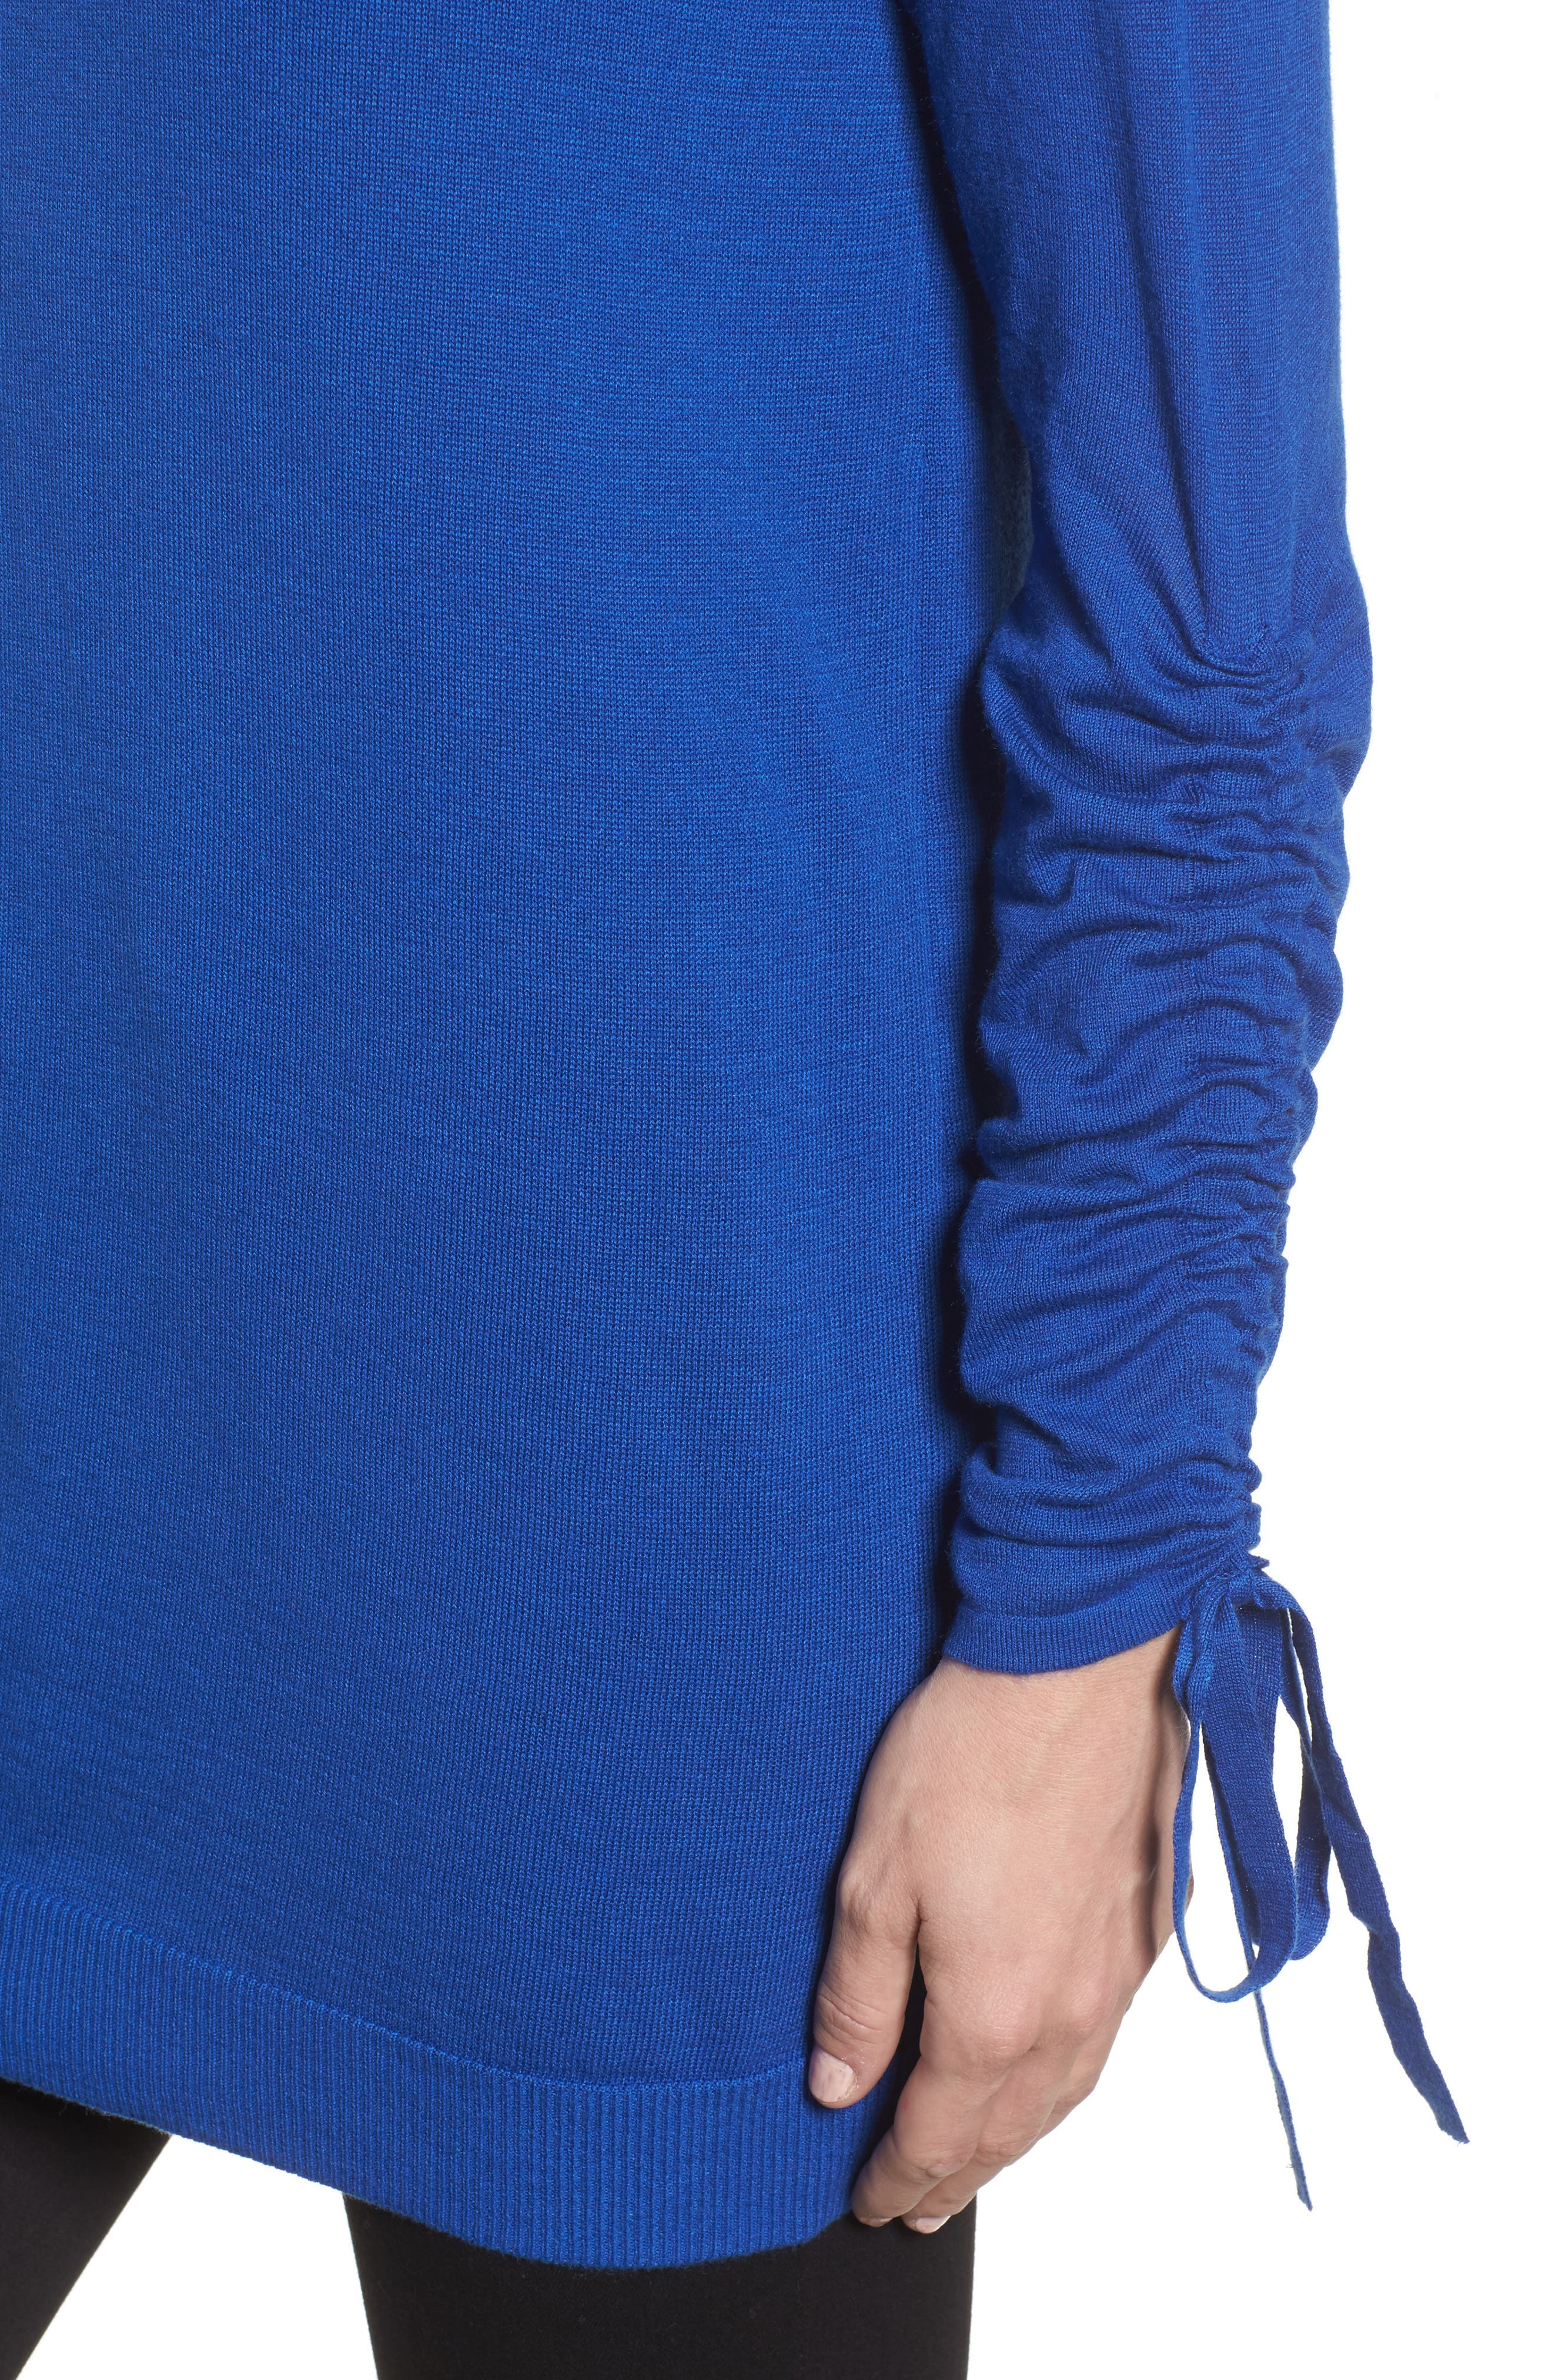 Ruched Sleeve Tunic Sweater,                             Alternate thumbnail 4, color,                             Blue Surf